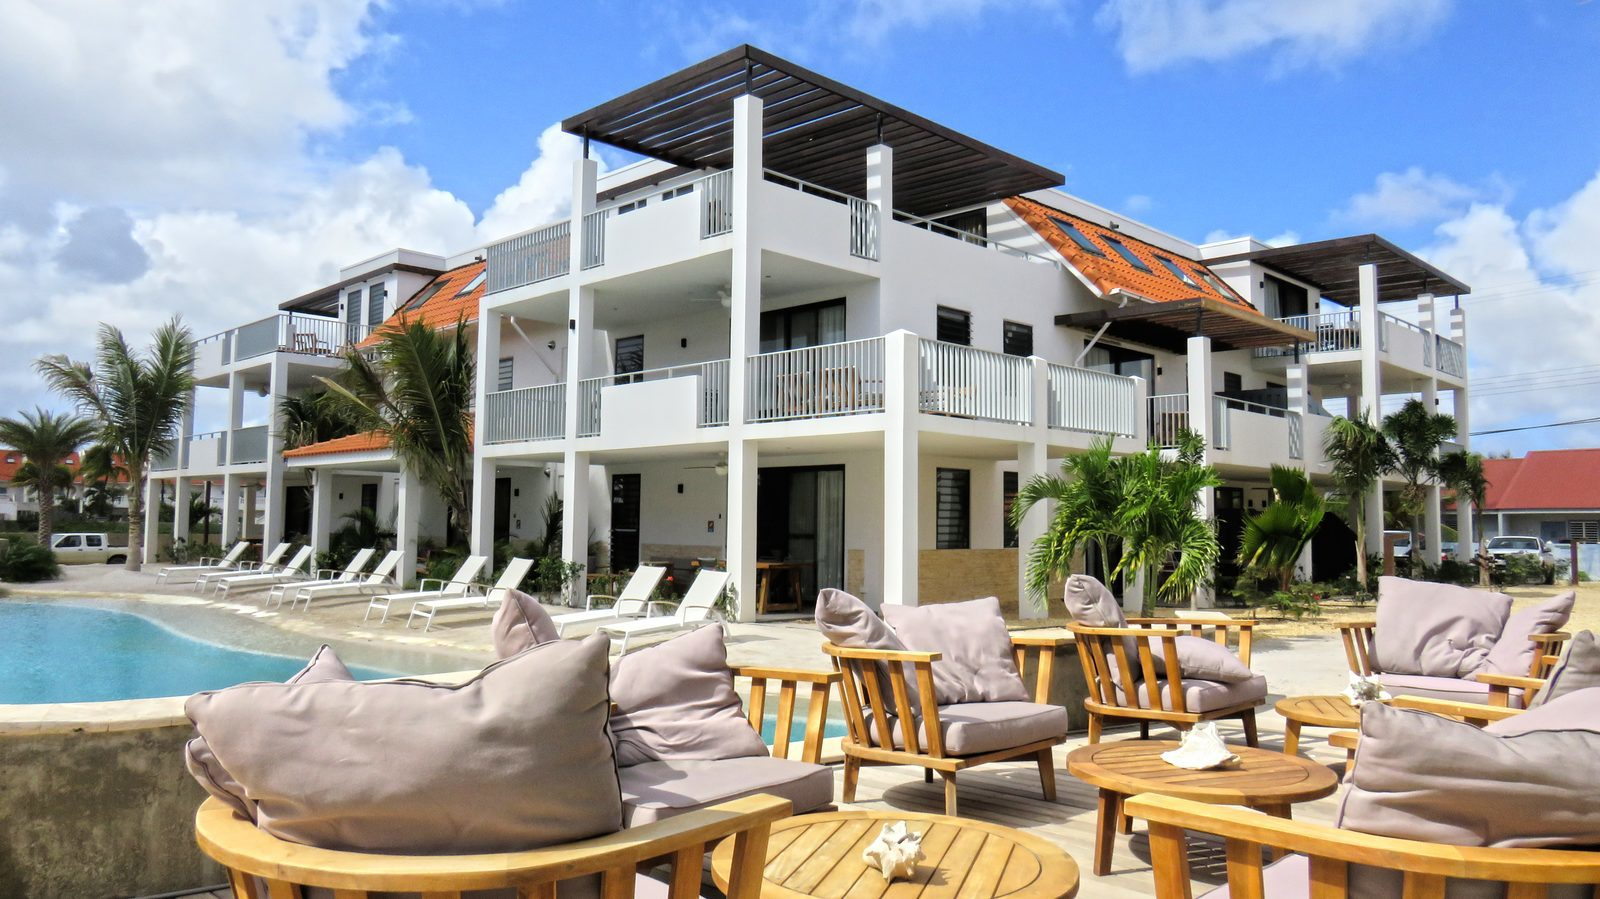 Looking for good resorts on Bonaire? Take a look at the good and new resorts that Resort Bonaire has. You can hang out at the pool and relax!